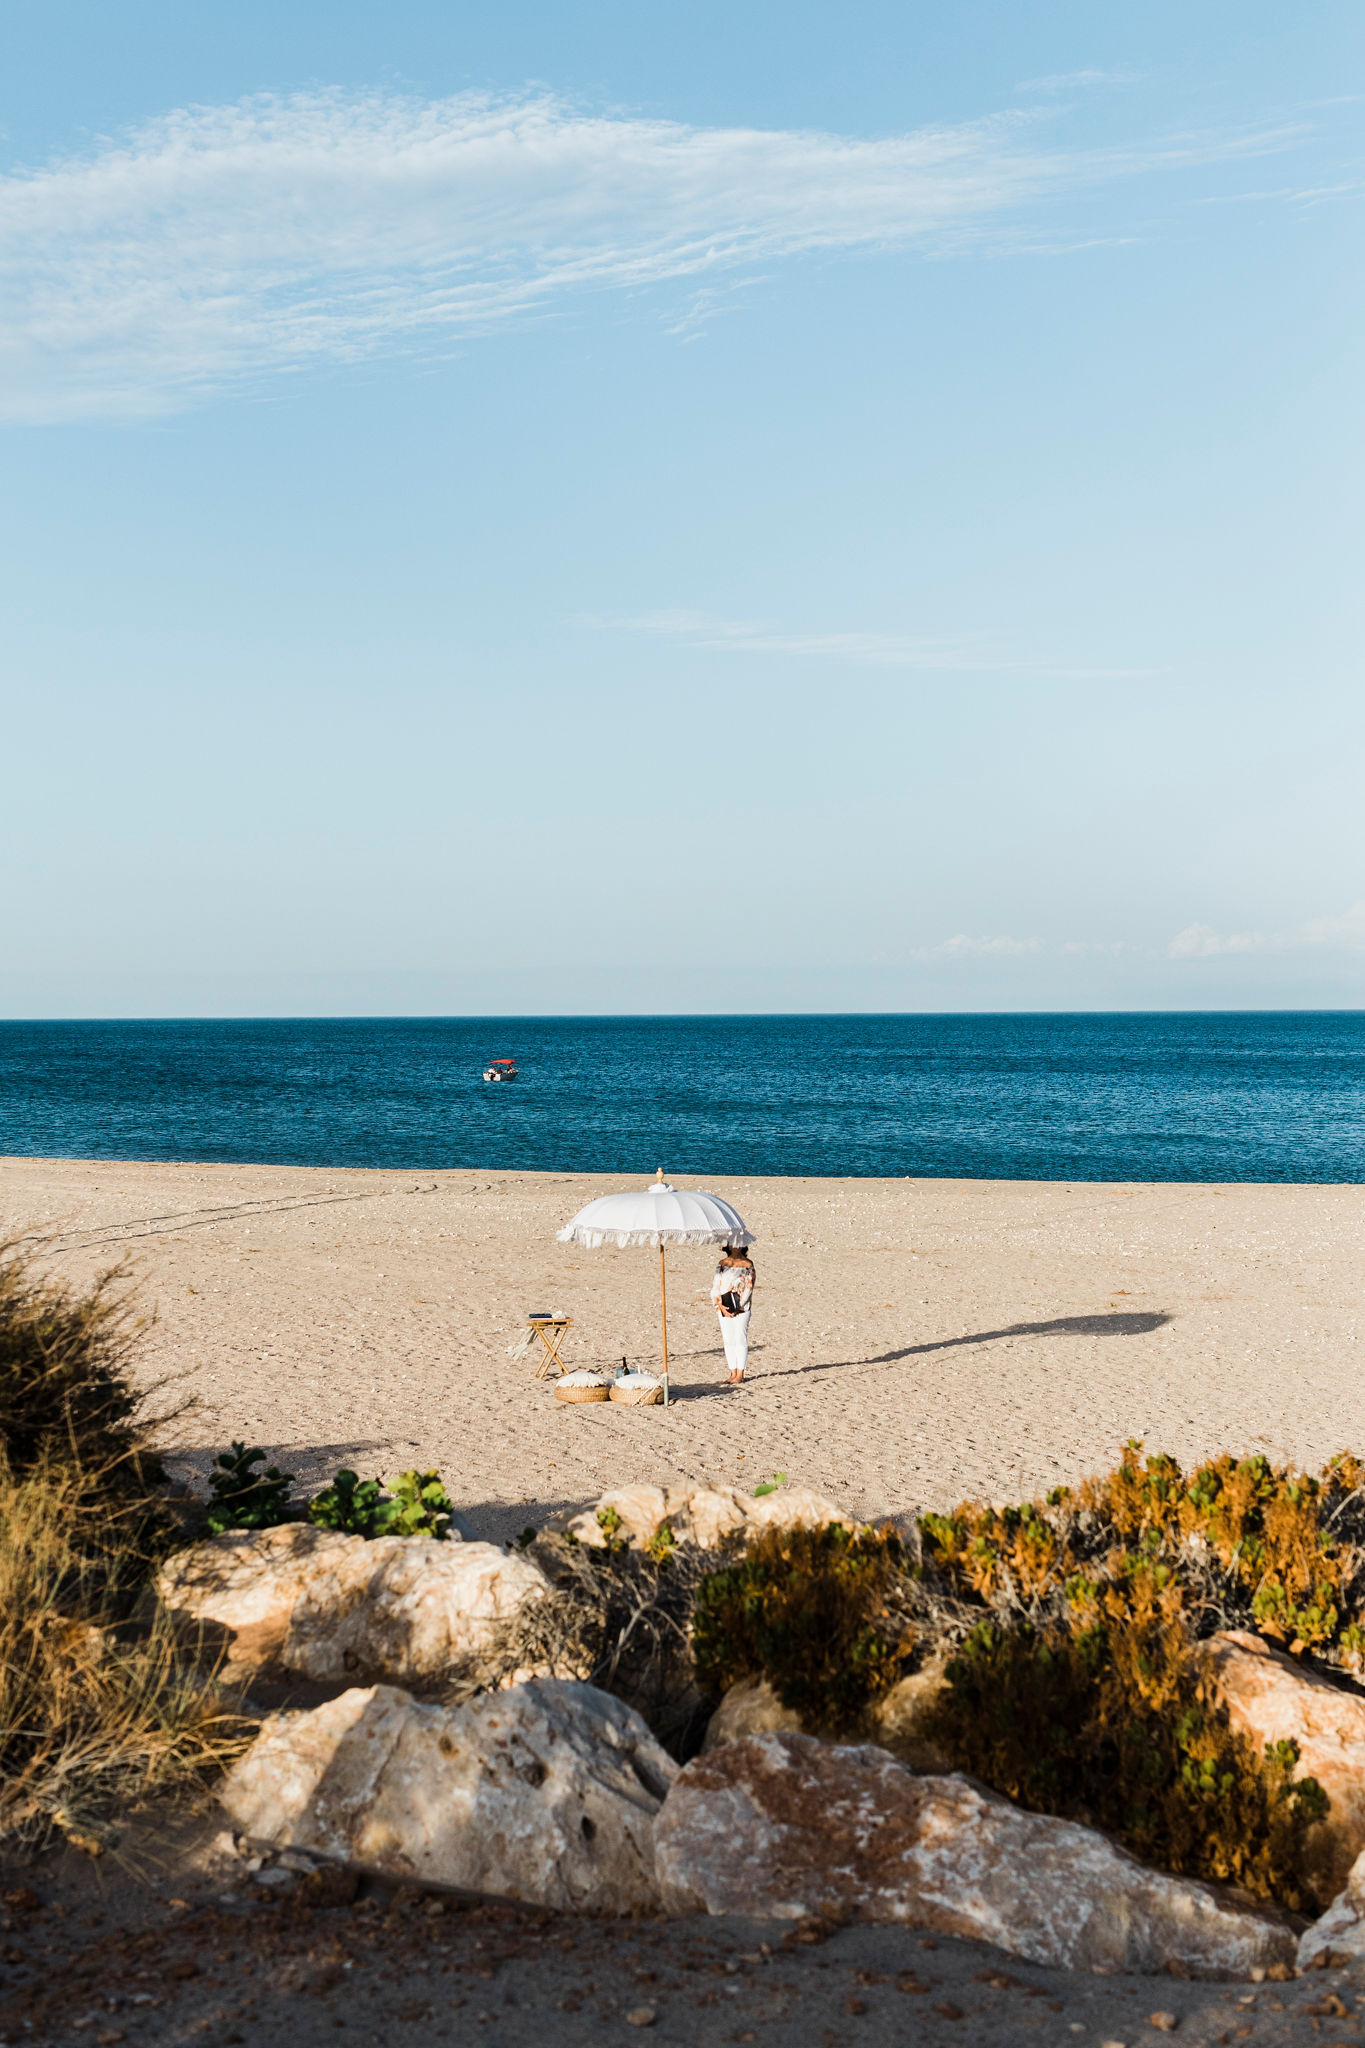 saltandsandeventhire-exmouth-BluemediaweddingsE&D-elope-to-ningaloo-blue-media-weddings-exmouth-22.jpg